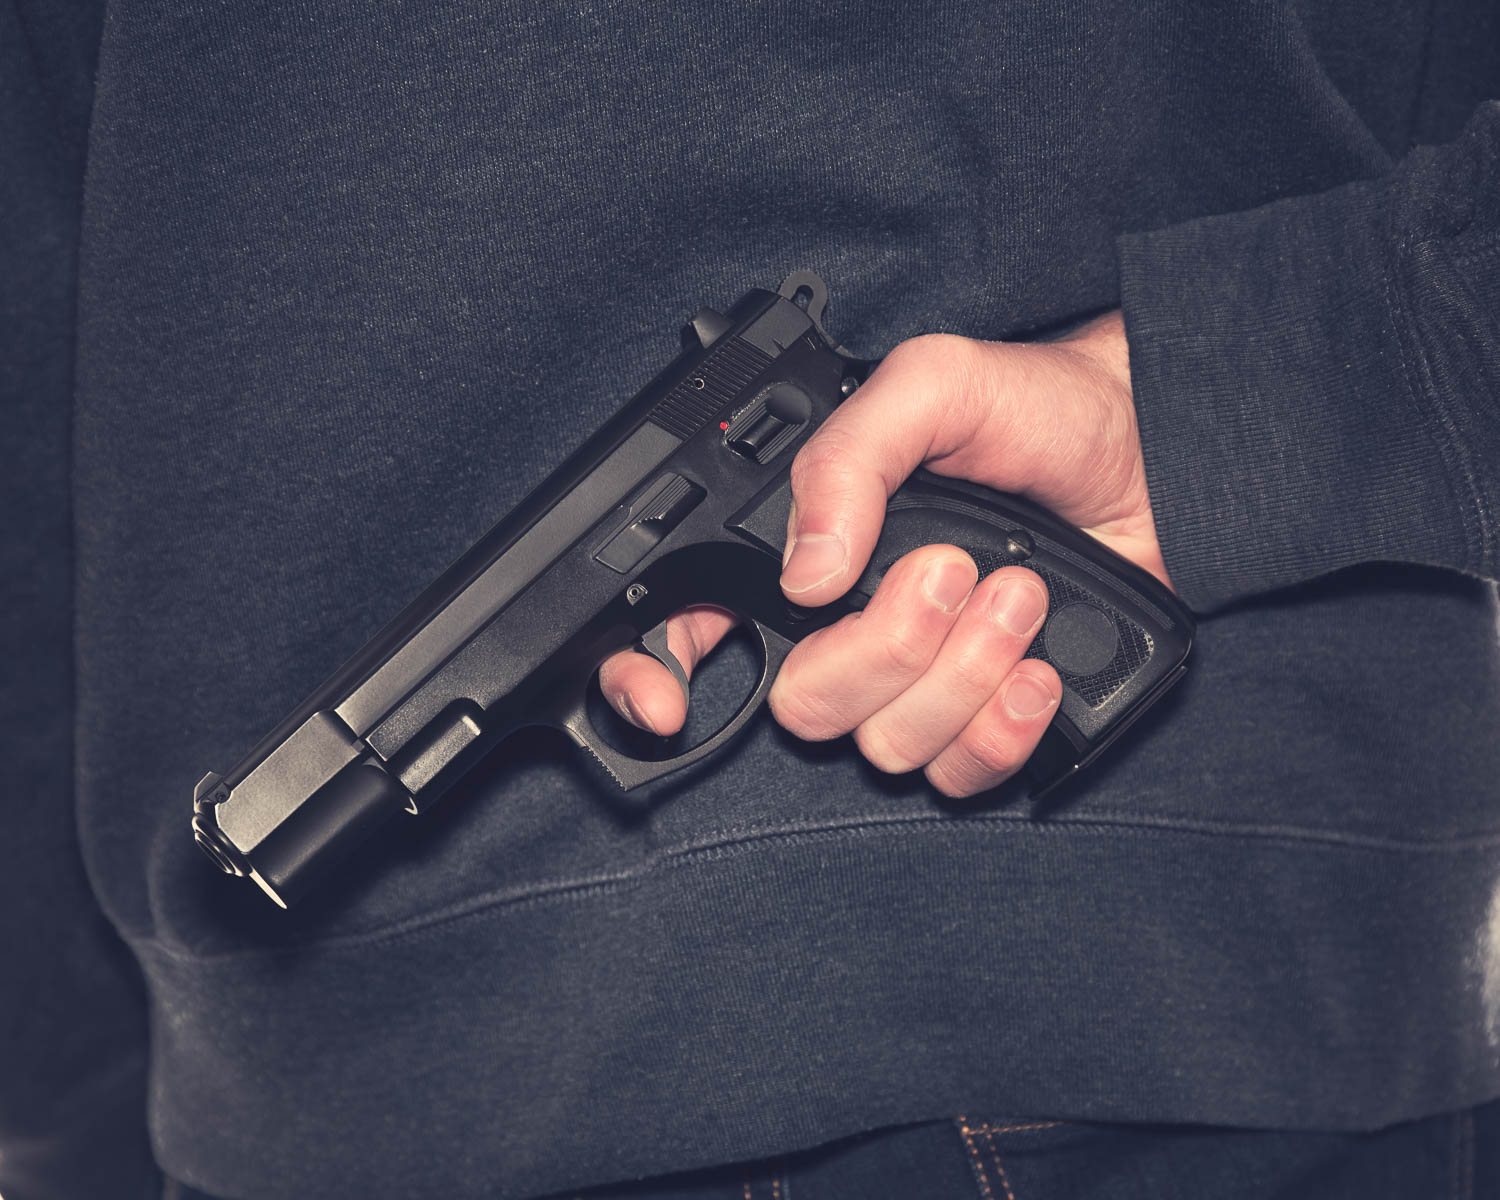 weapons crime fort Lauderdale criminal defense attorney for gun possession or weapons crimes